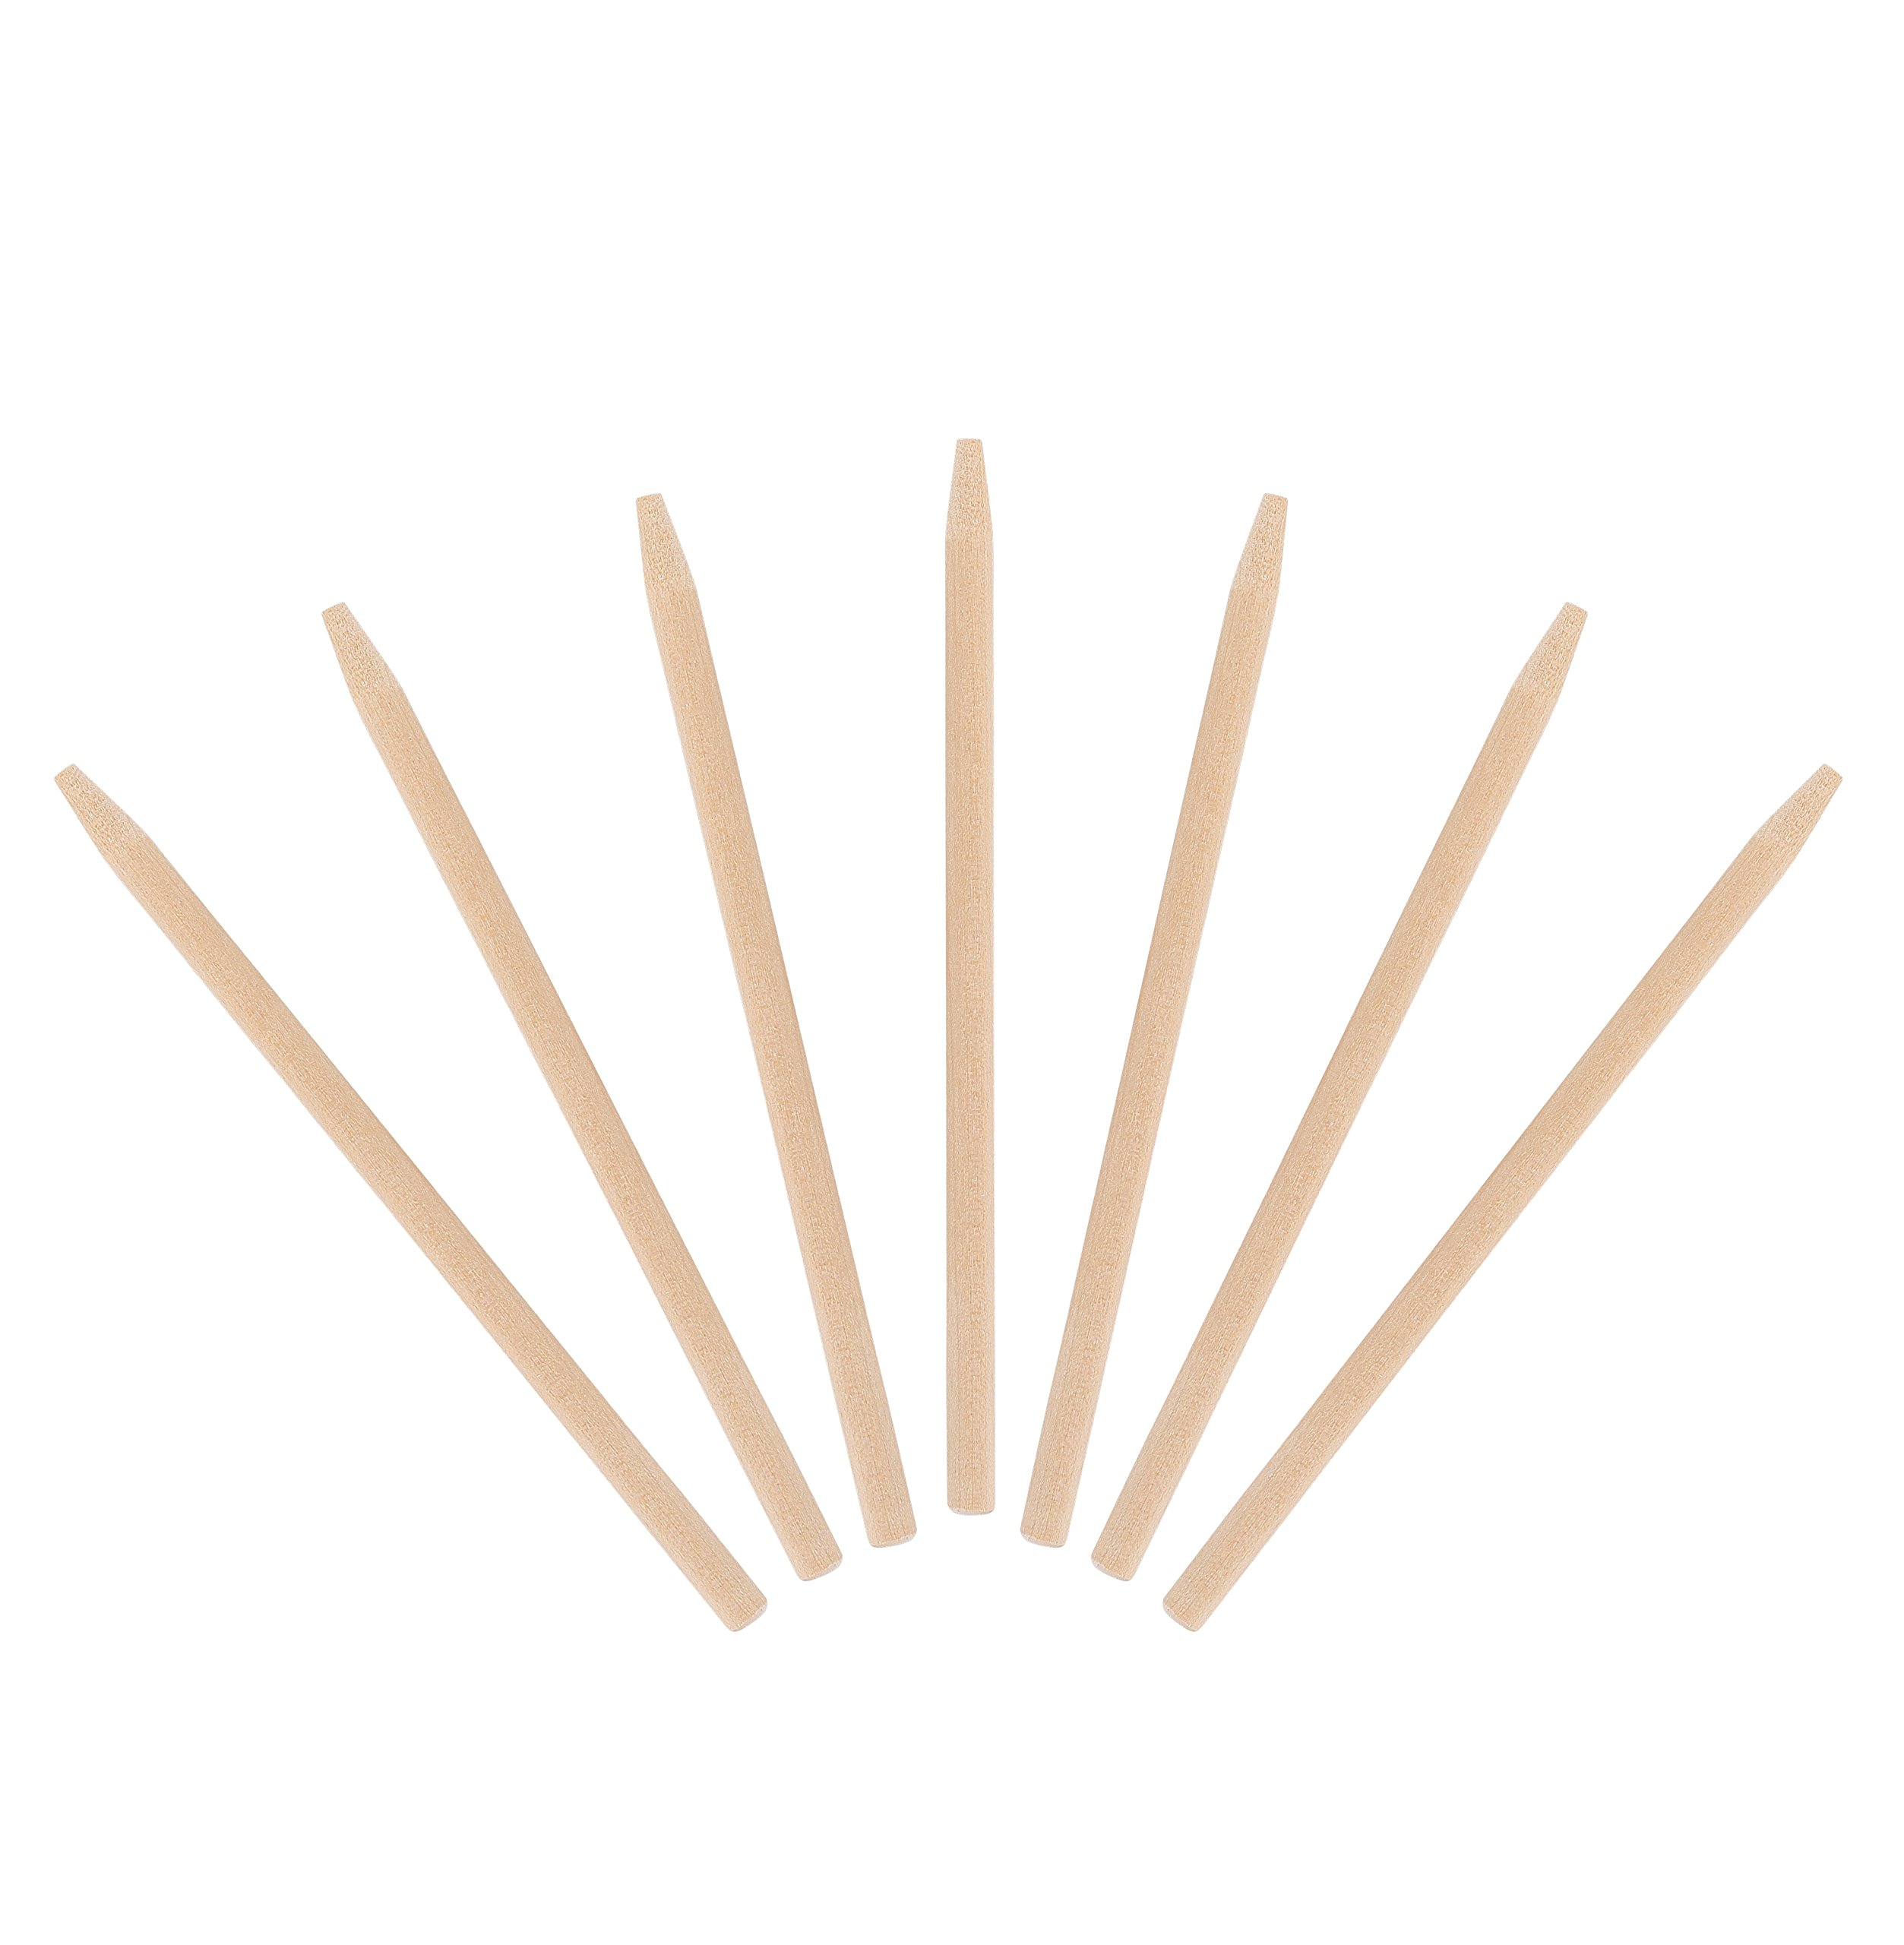 KingSeal Natural Birch Wood Candy Apple Skewers, 5.5 Inch, 6.5mm - Master Case of 5 Packs of 1000 per Pack